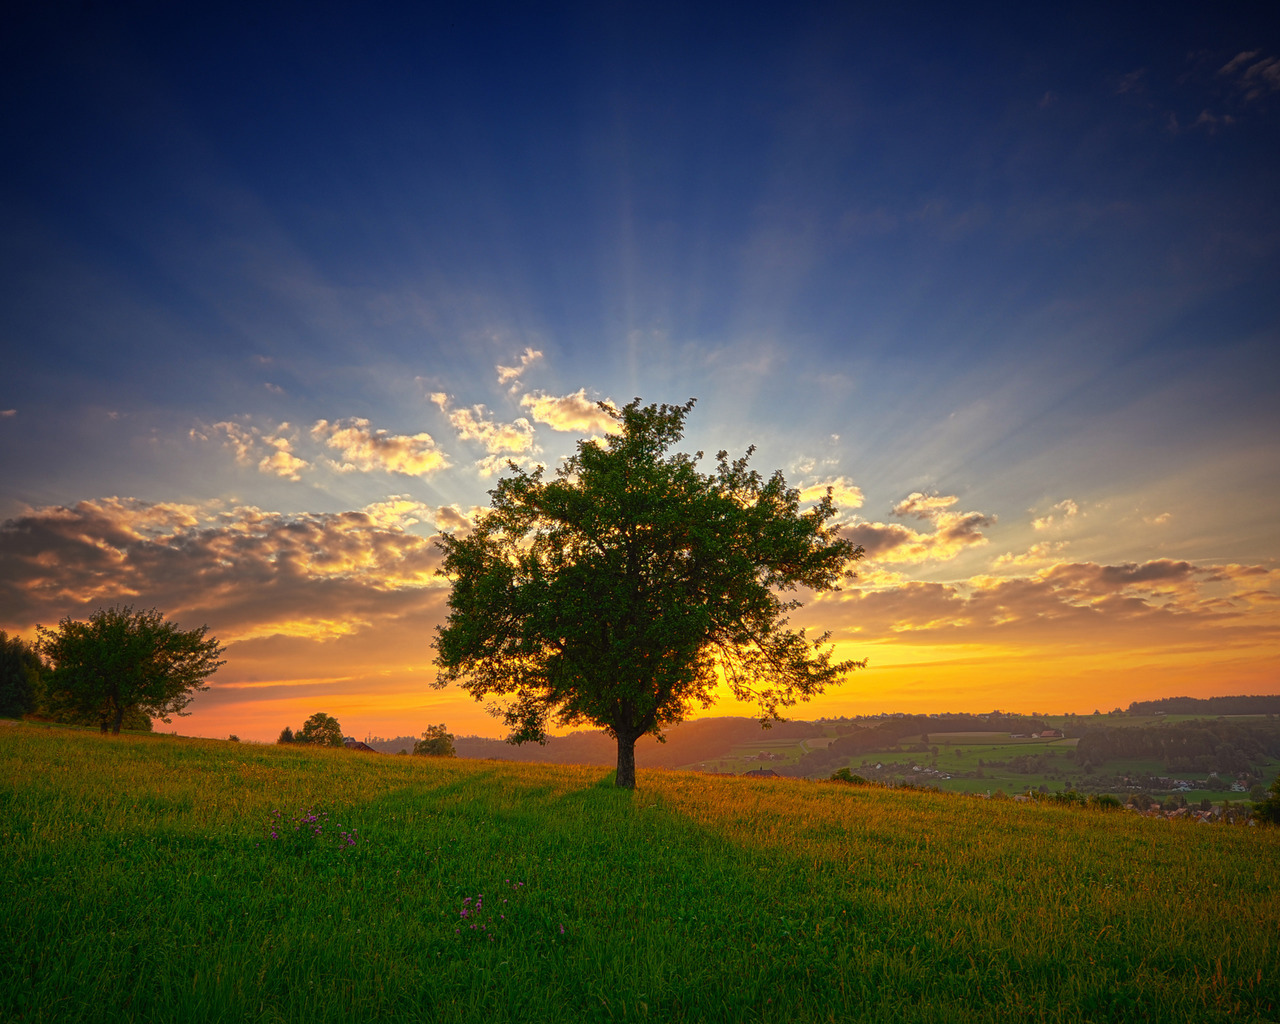 11163 download wallpaper Landscape, Trees, Sunset, Sky screensavers and pictures for free